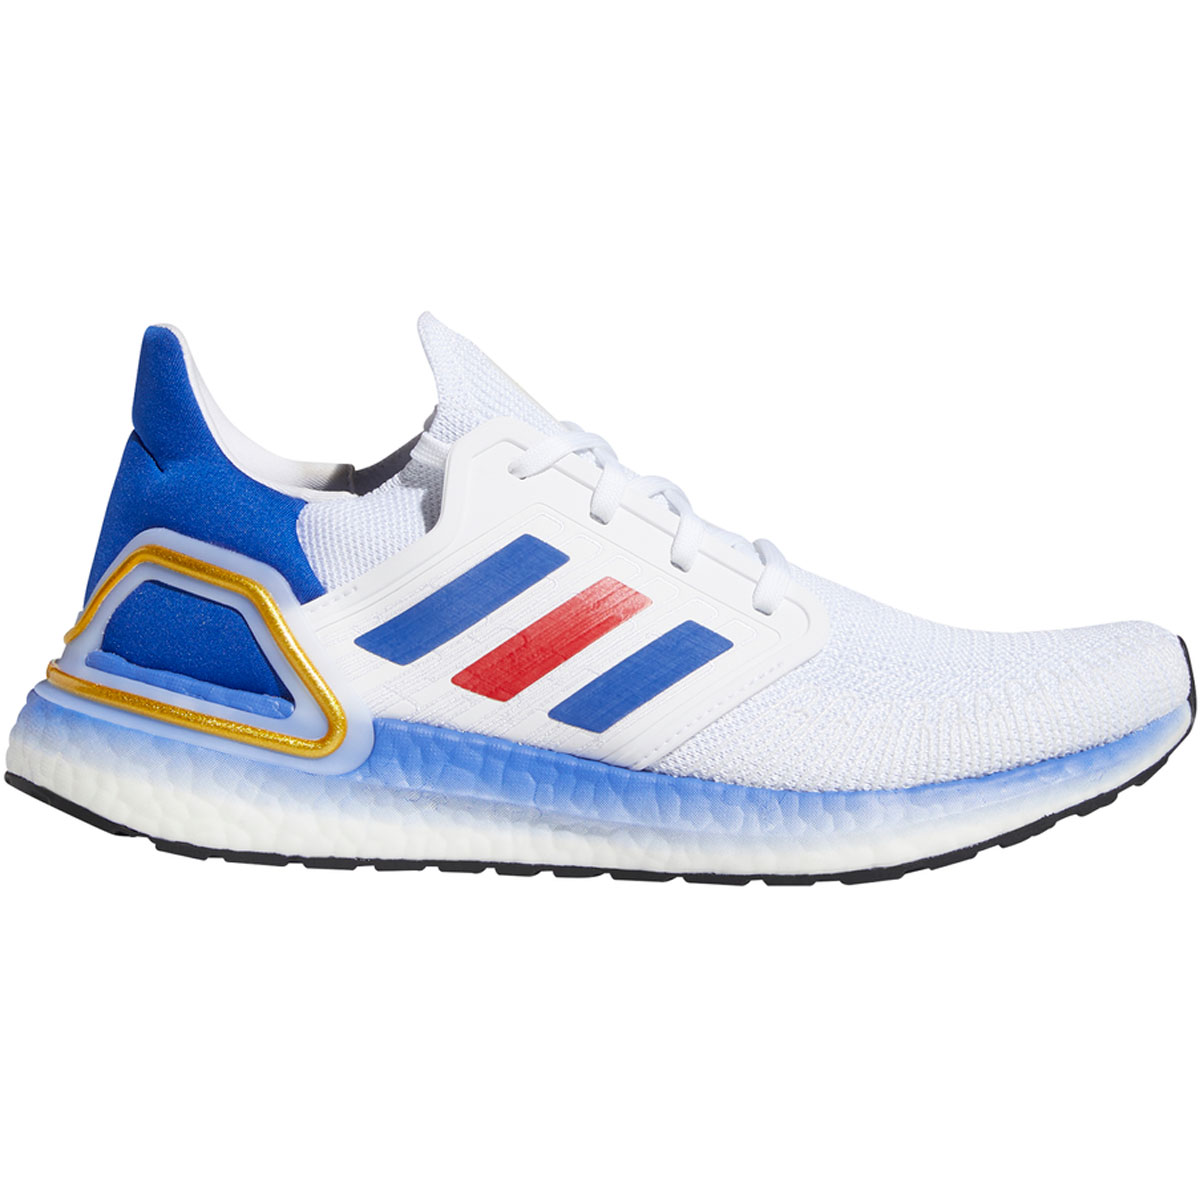 Men's Adidas Ultraboost 20 Running Shoe - Color: White/Team Usa - Size: 6.5 - Width: Regular, White/Team USA, large, image 1